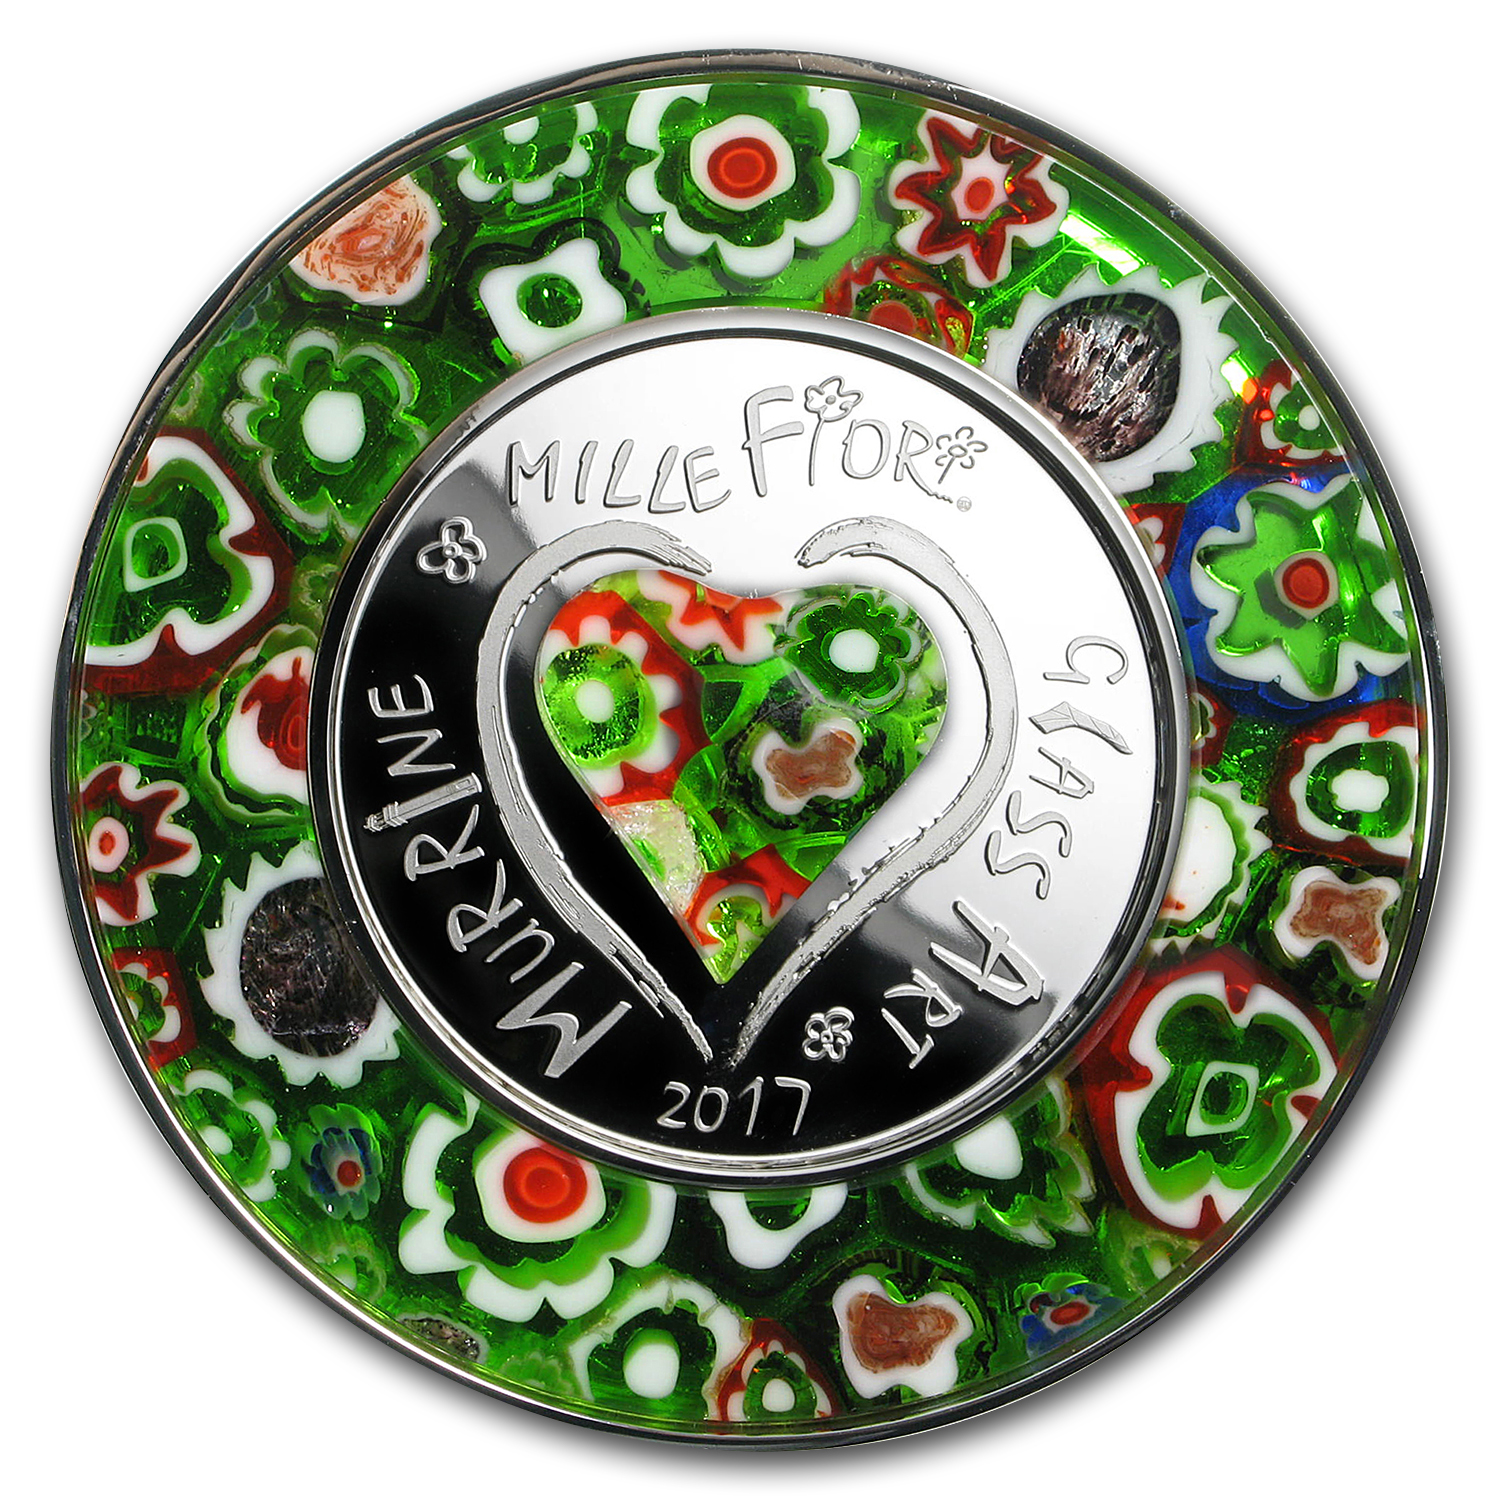 2017 Cook Islands Silver Murrine Millefiori Glass Art